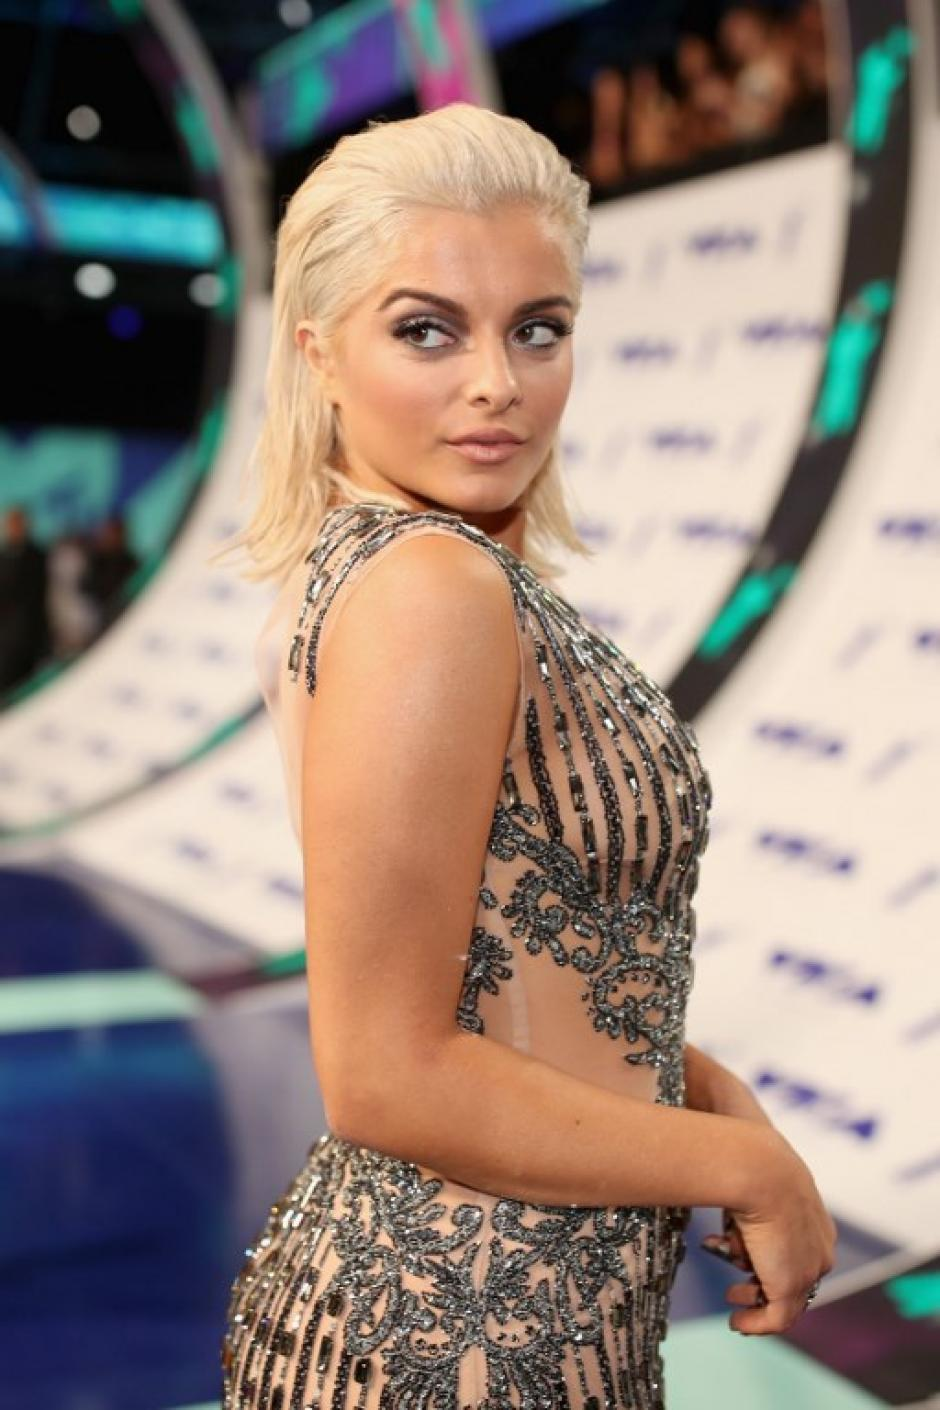 Bebe Rexha en los Video Music Awards 2017. (Foto: AFP)